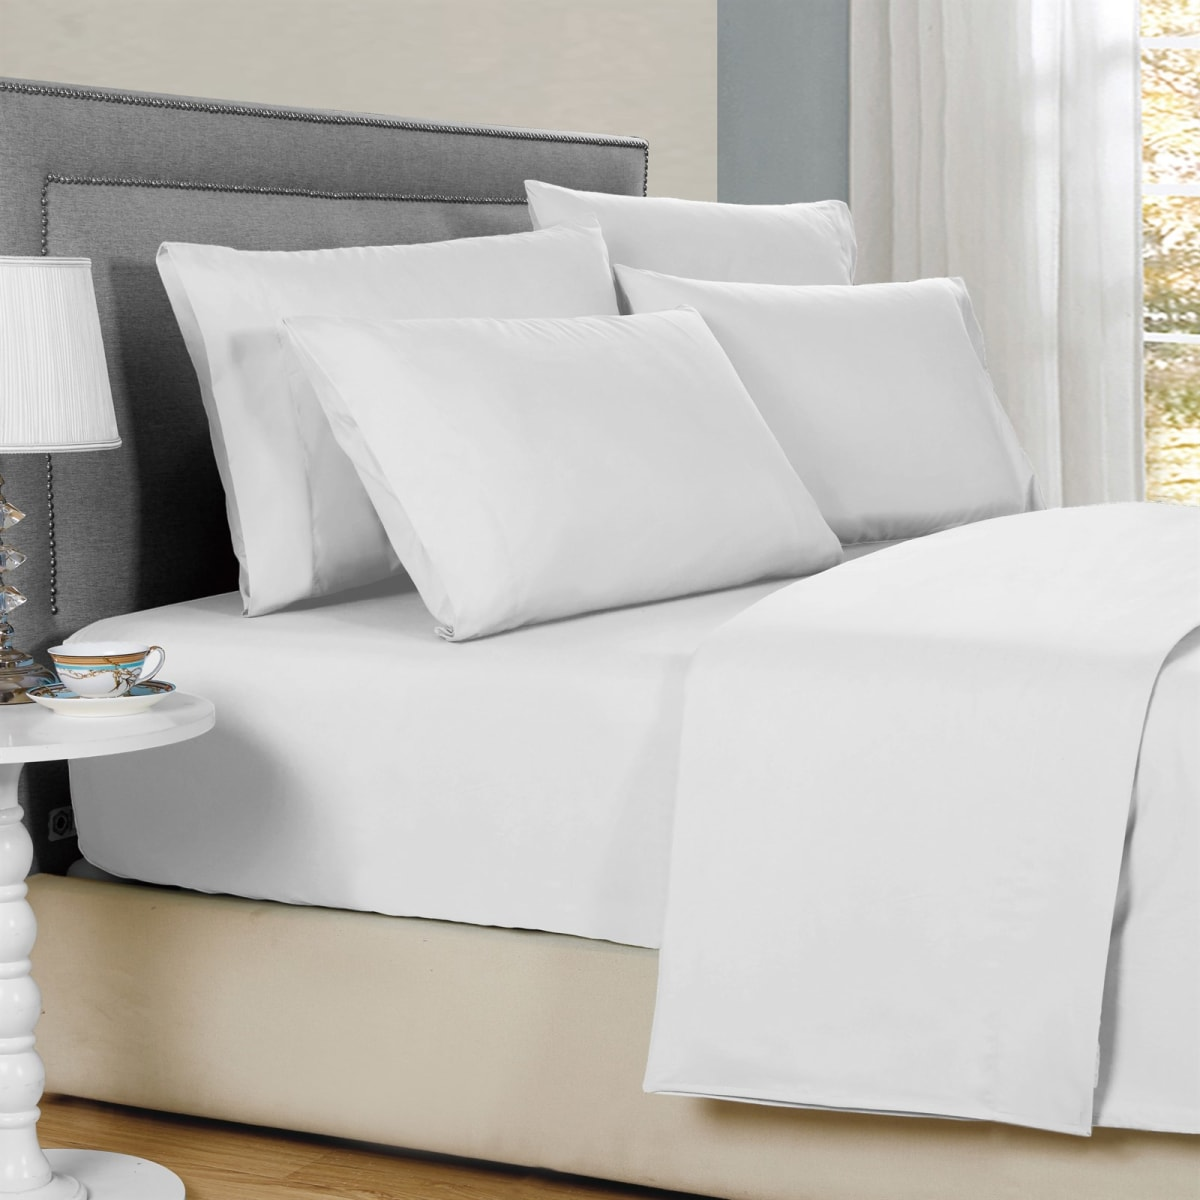 Bamboo 6 Piece Solid Sheet Sets   1800 Count